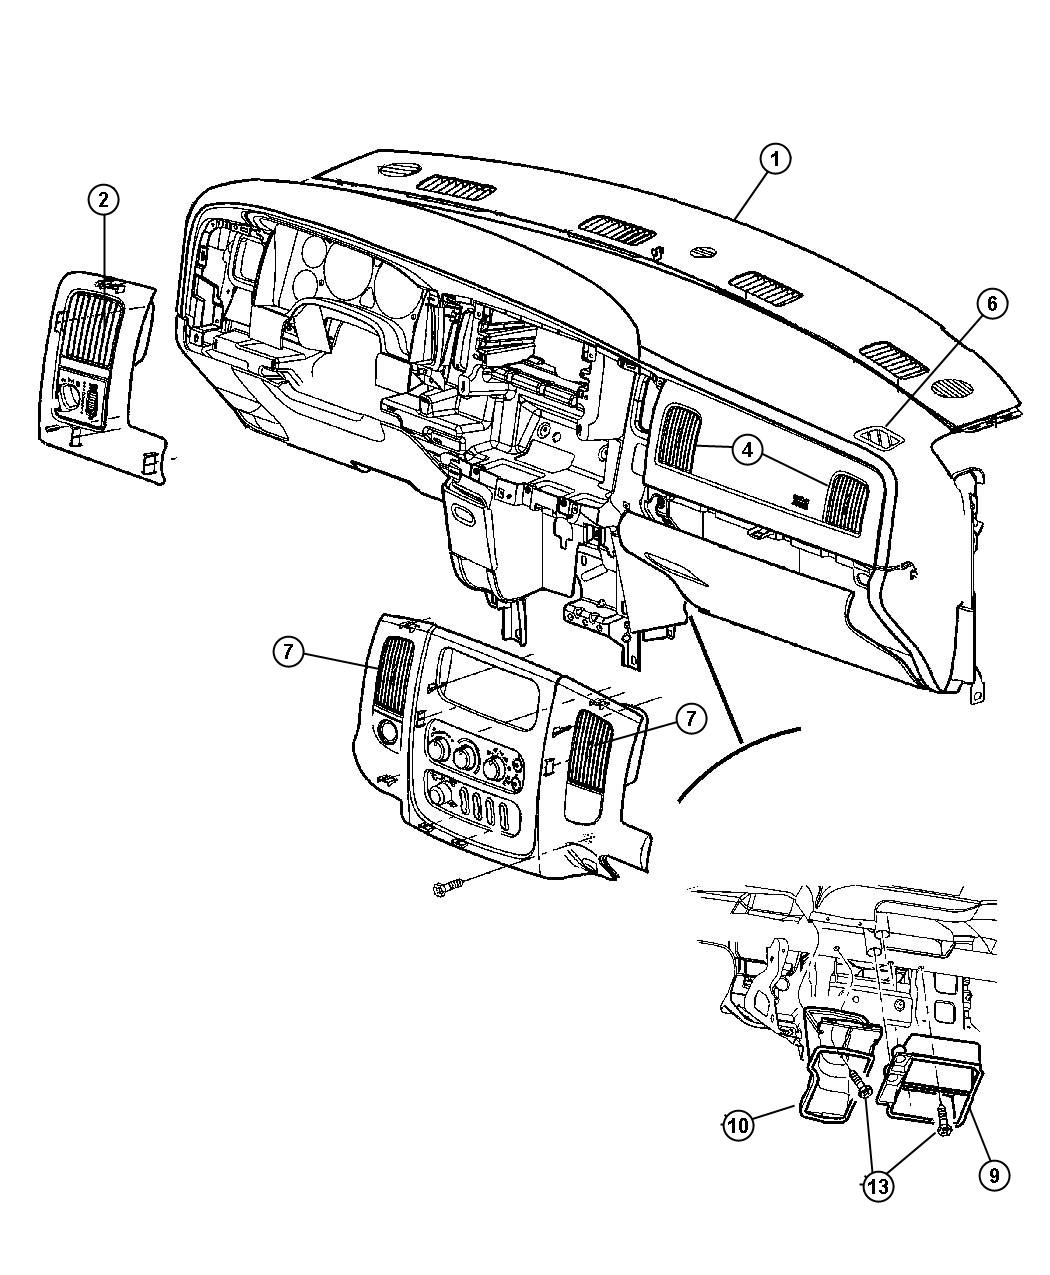 Dodge Ram Adapter Defroster Duct Air Ducts